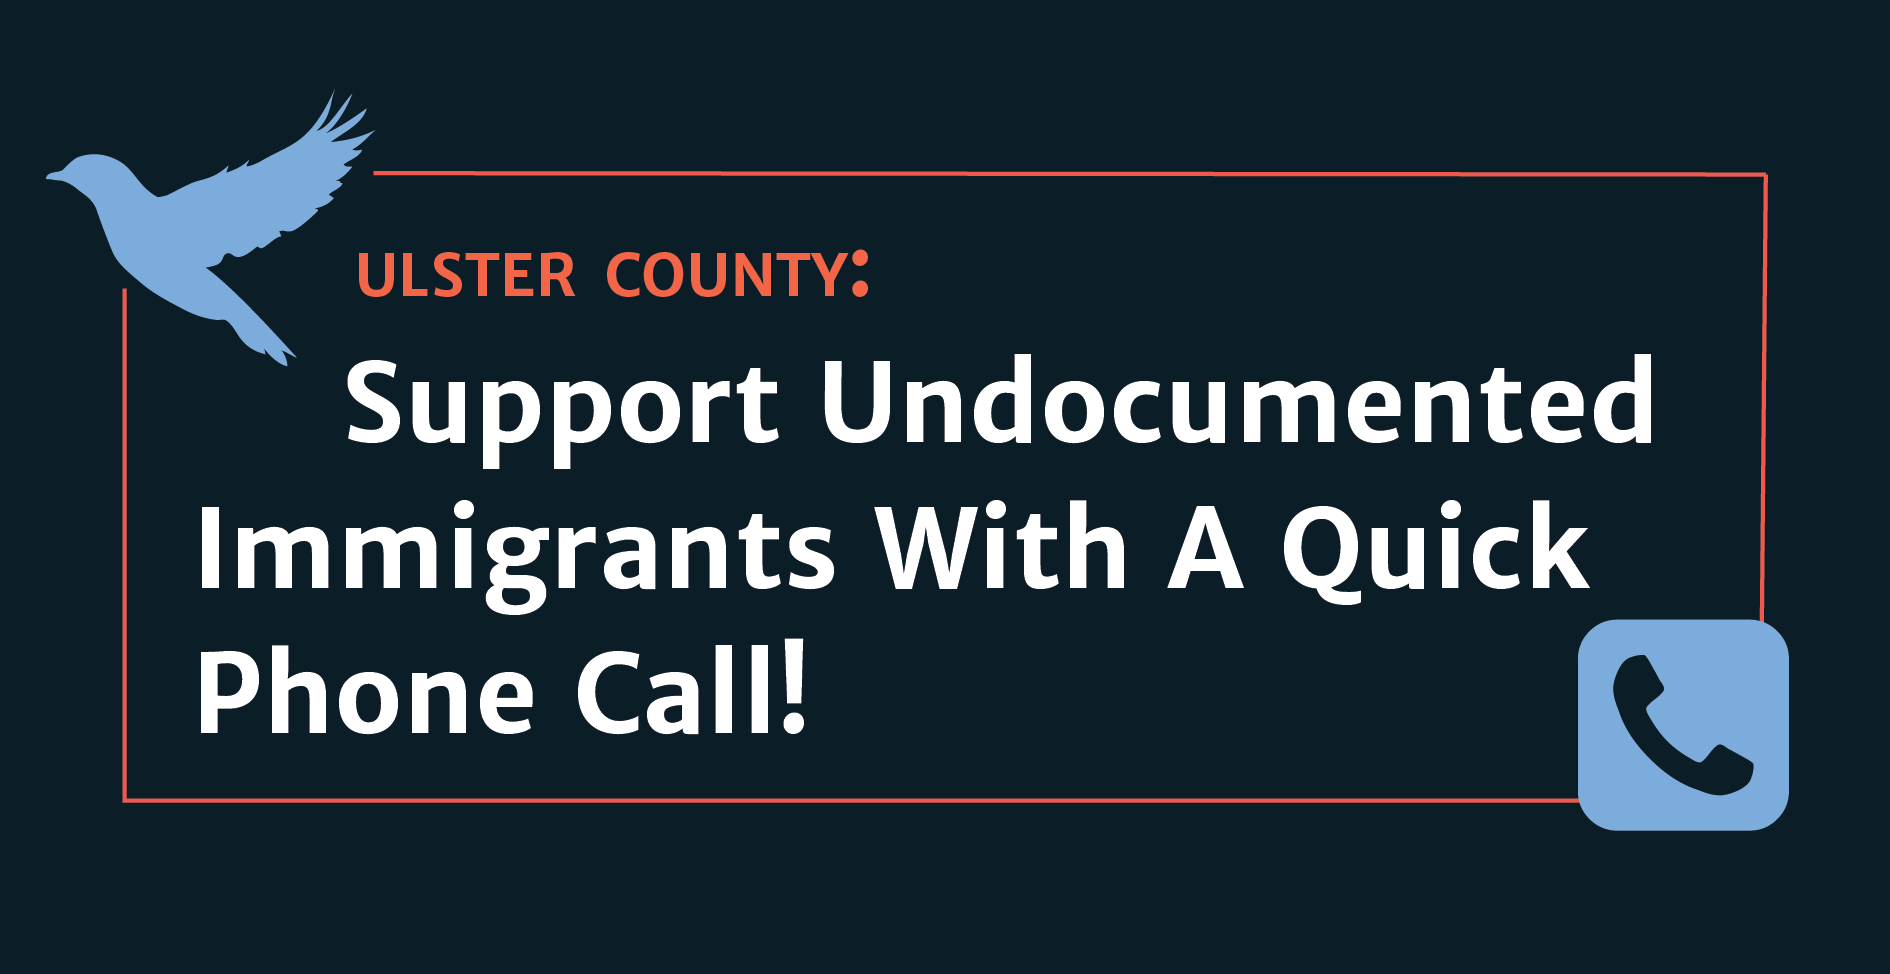 Support Undocumented Immigrants in Ulster County